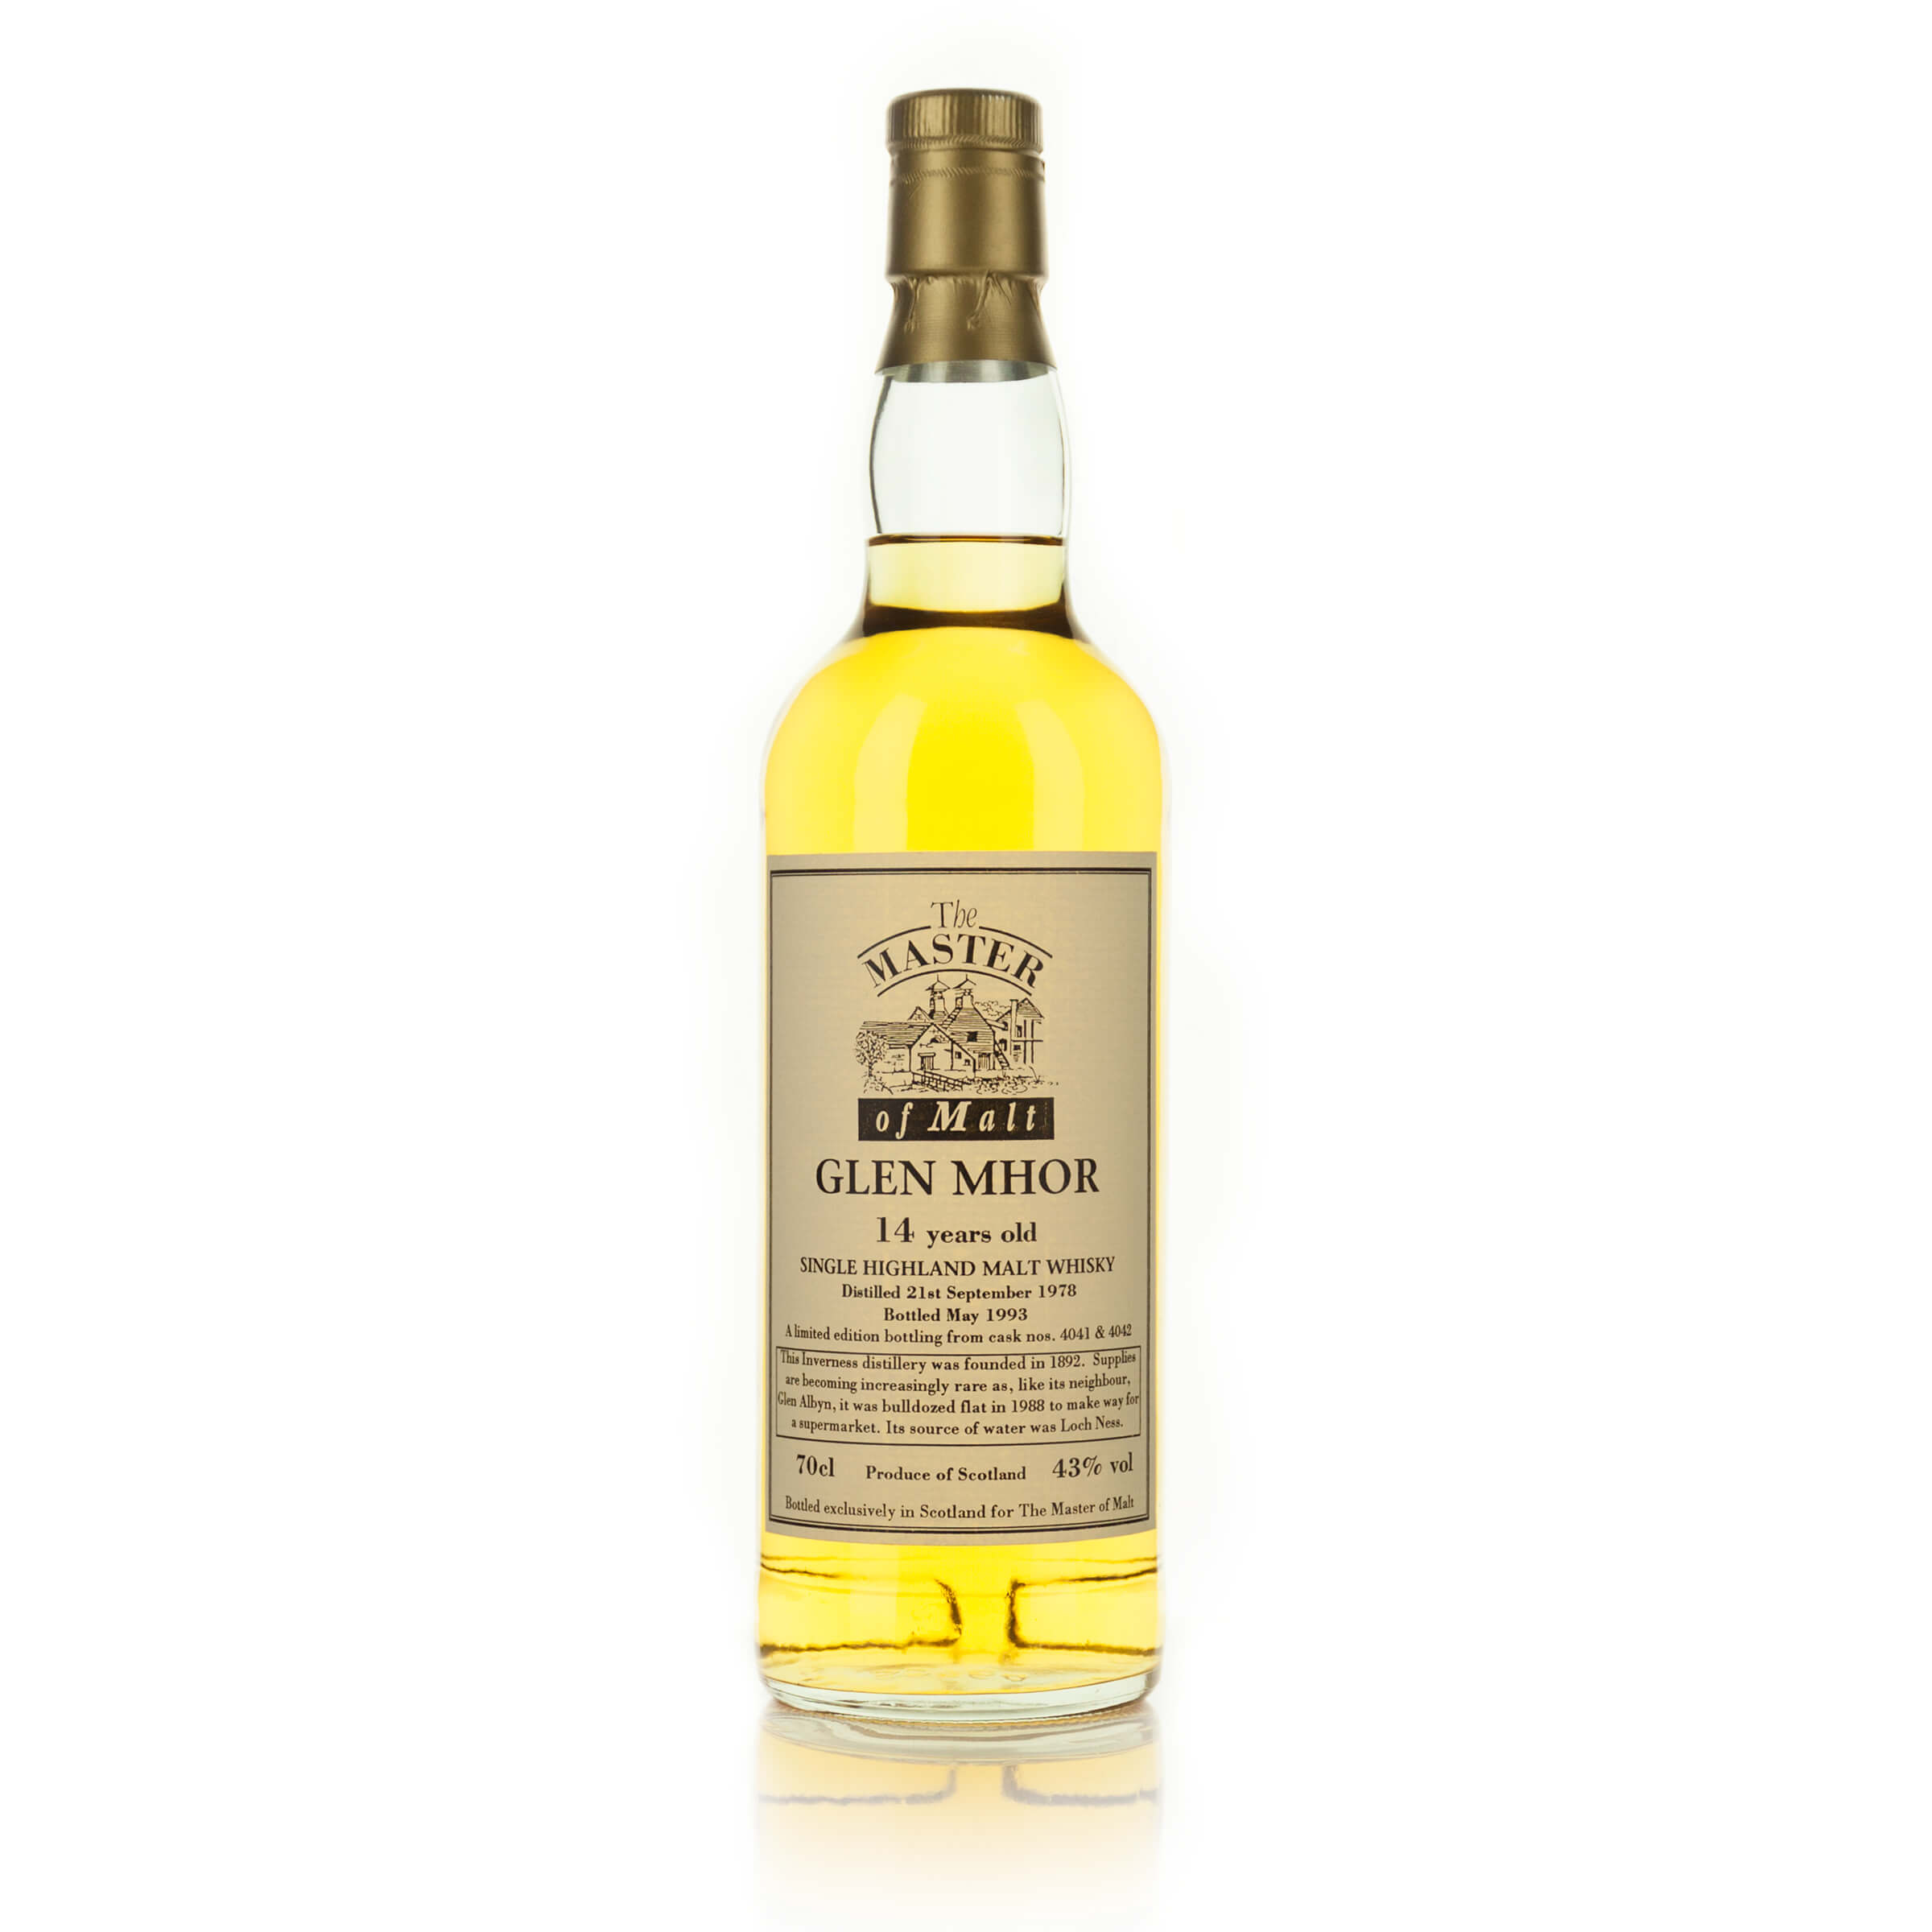 GLEN MHOR SINGLE HIGHLAND MALT WHISKY 14 YEARS (ONE 70 CL)